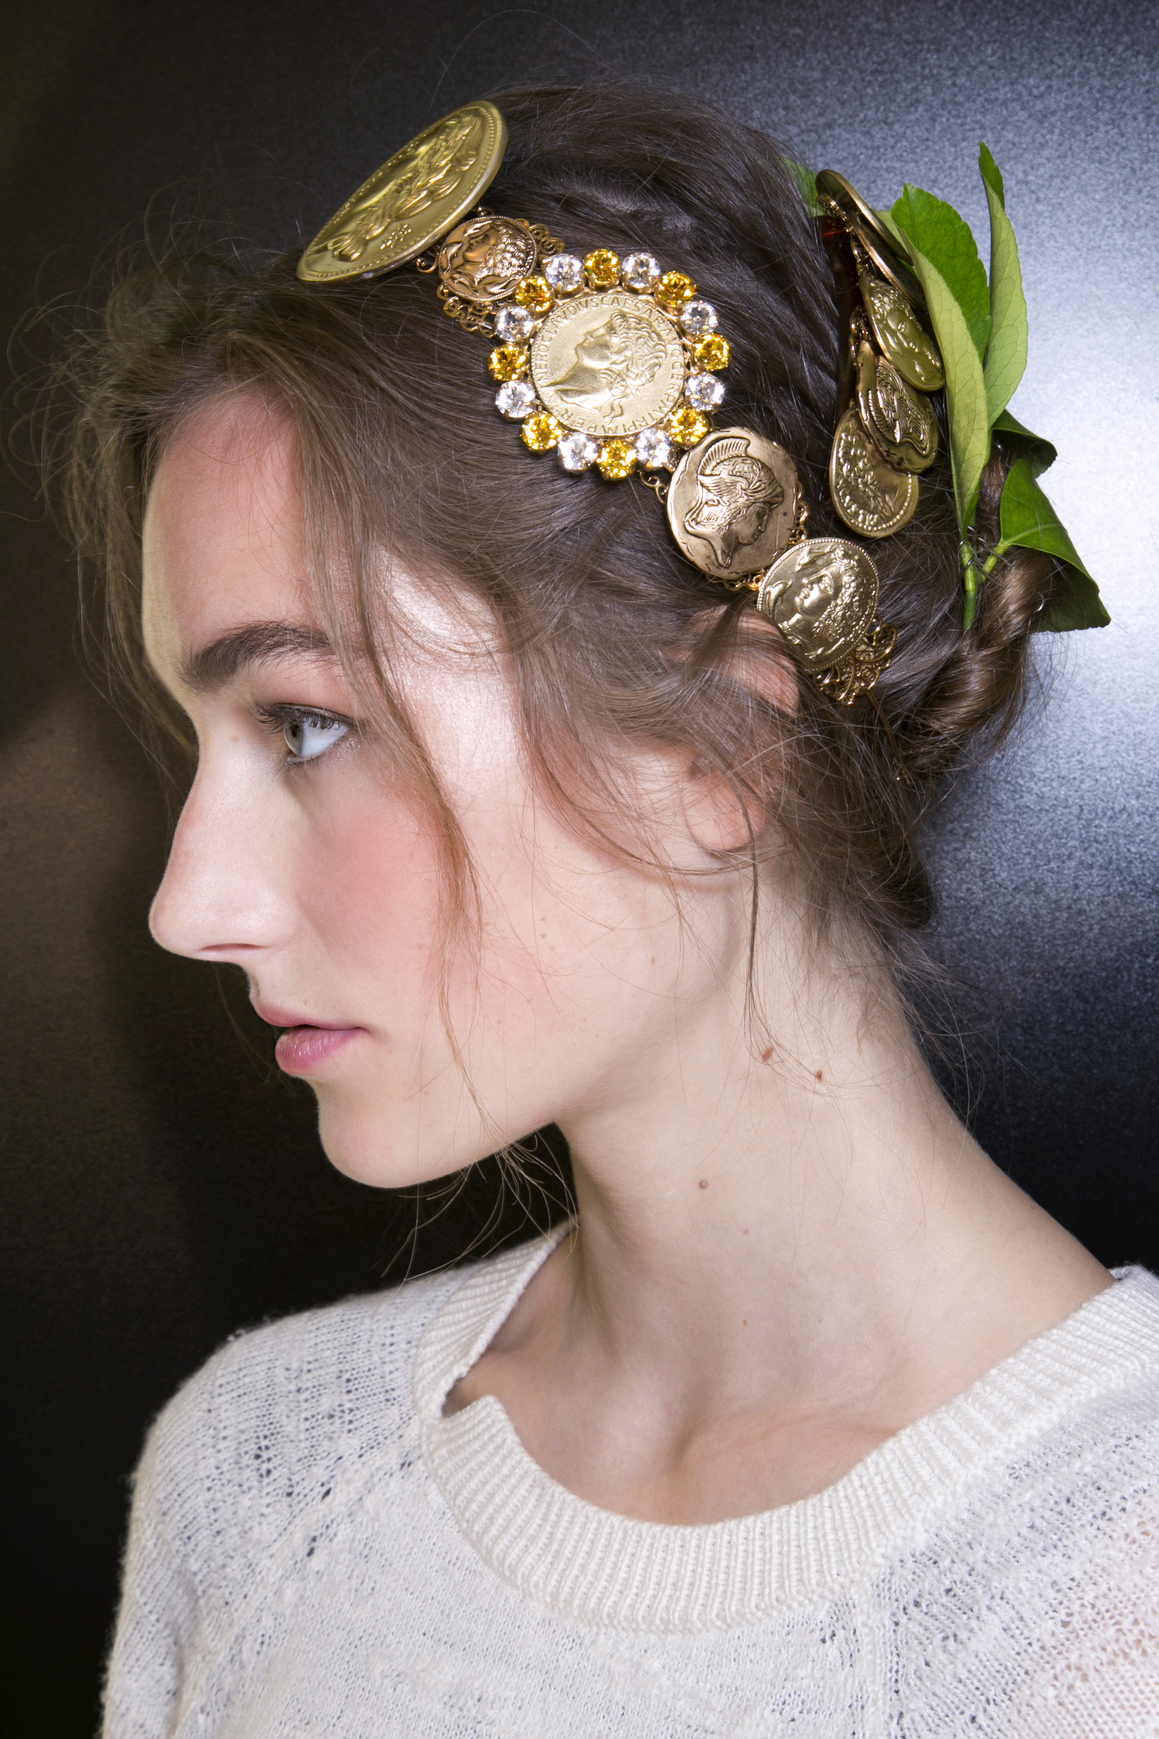 How to wear hair accessories like a grown up thefashionspot dolce gabbana hair accessory junglespirit Image collections